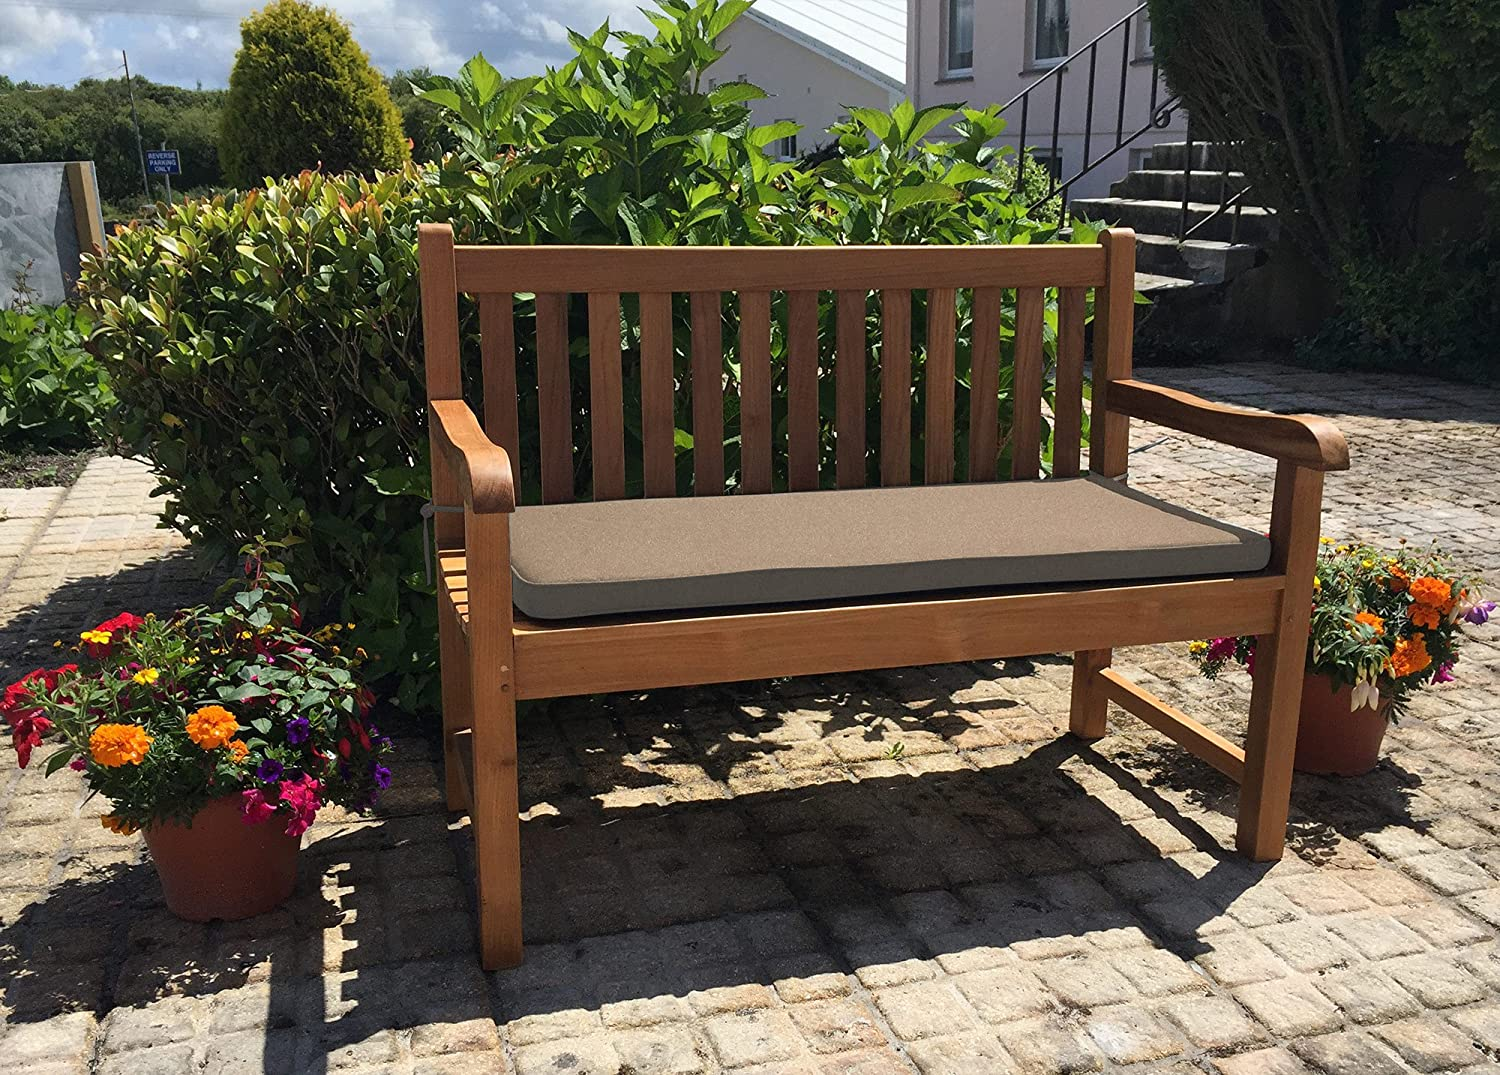 Cushion for Two Seater Garden Bench - (cushion only) (Forest Green) Inspiring Furniture LTD